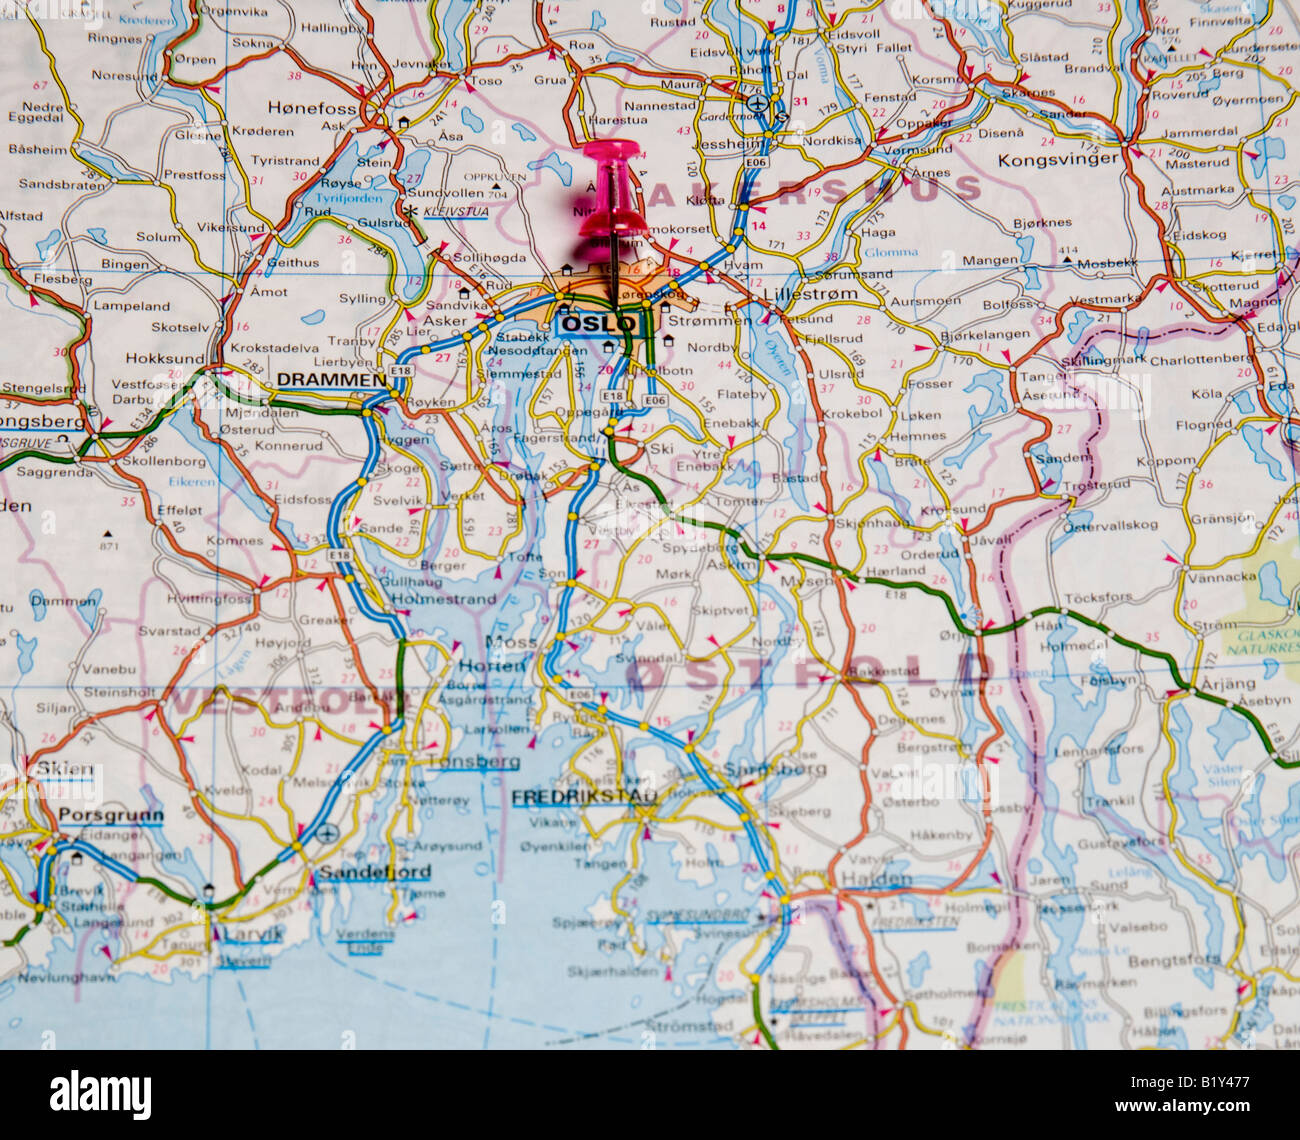 Road map of oslo norway europe stock photo 18421067 alamy road map of oslo norway europe publicscrutiny Image collections